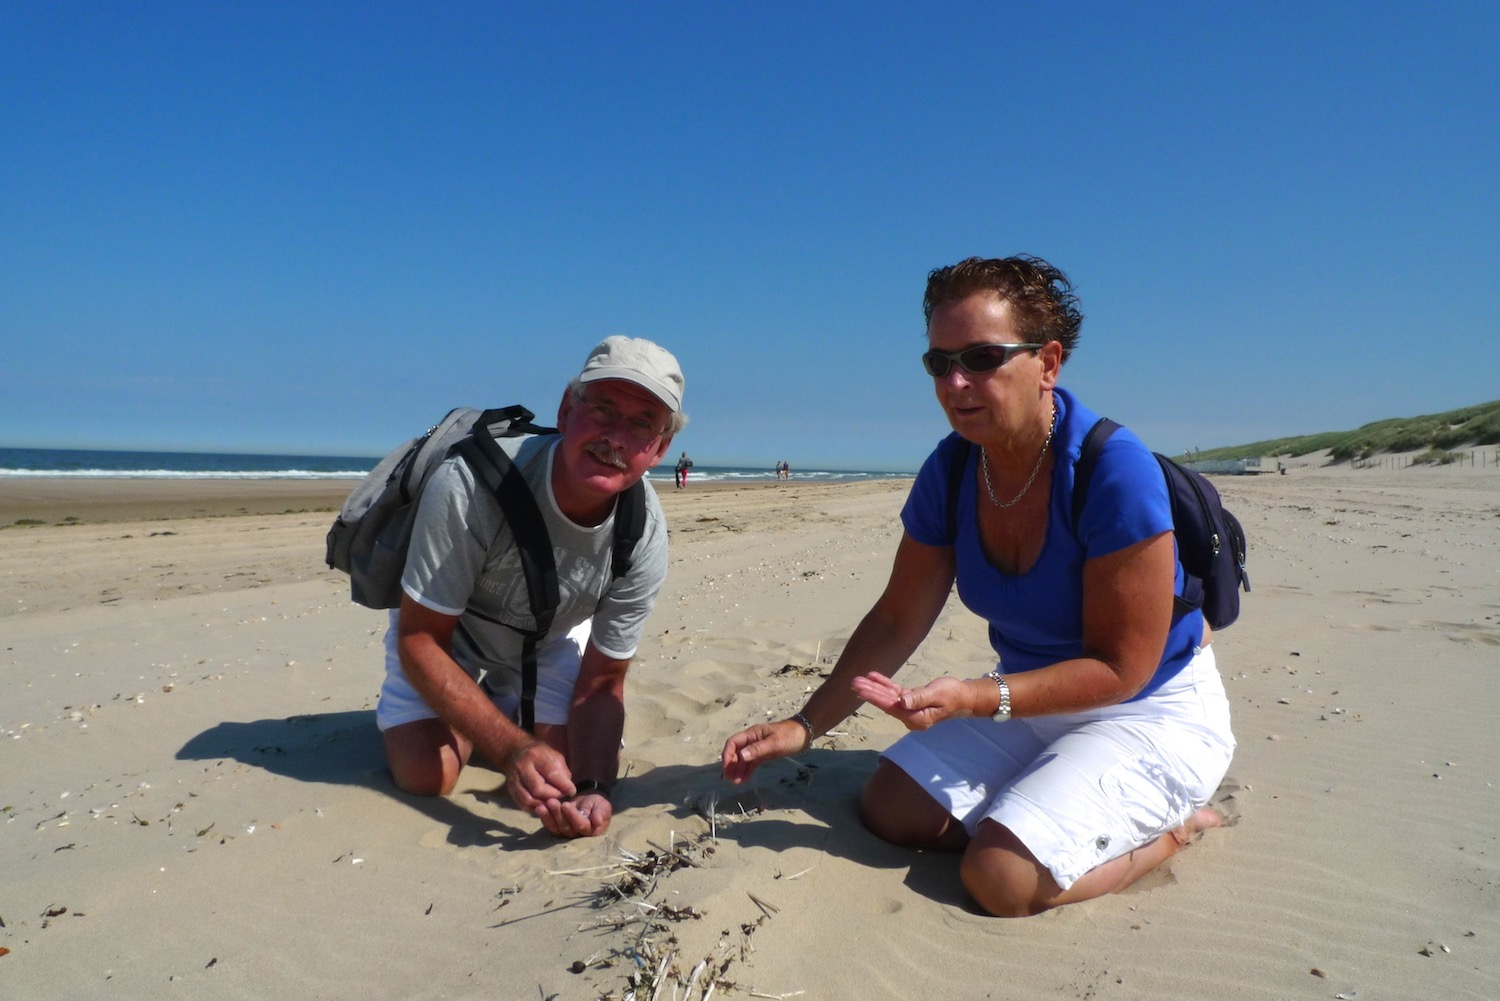 Hans and Marja van Weenen have been collecting plastic flotsam at their beach since the 1970s